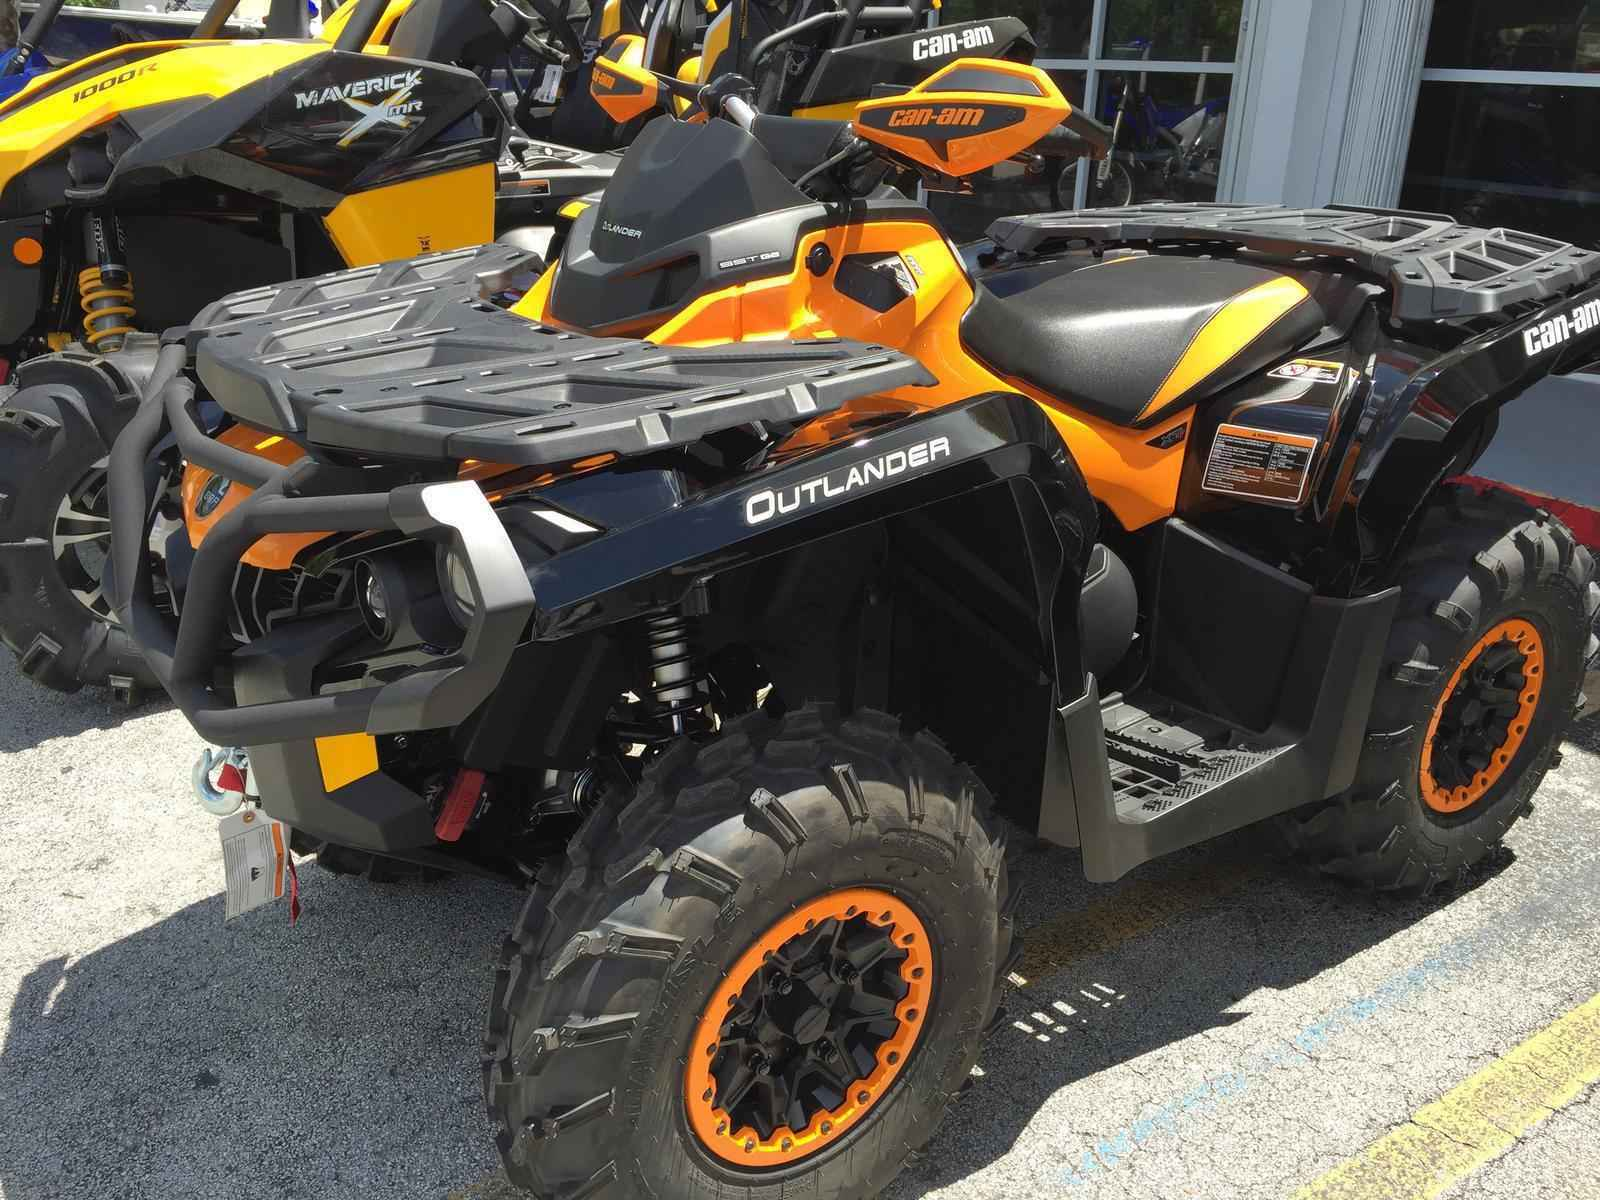 New 2015 Can Am OUTLANDER XT P 1000 ATVs For Sale in Florida on ATV